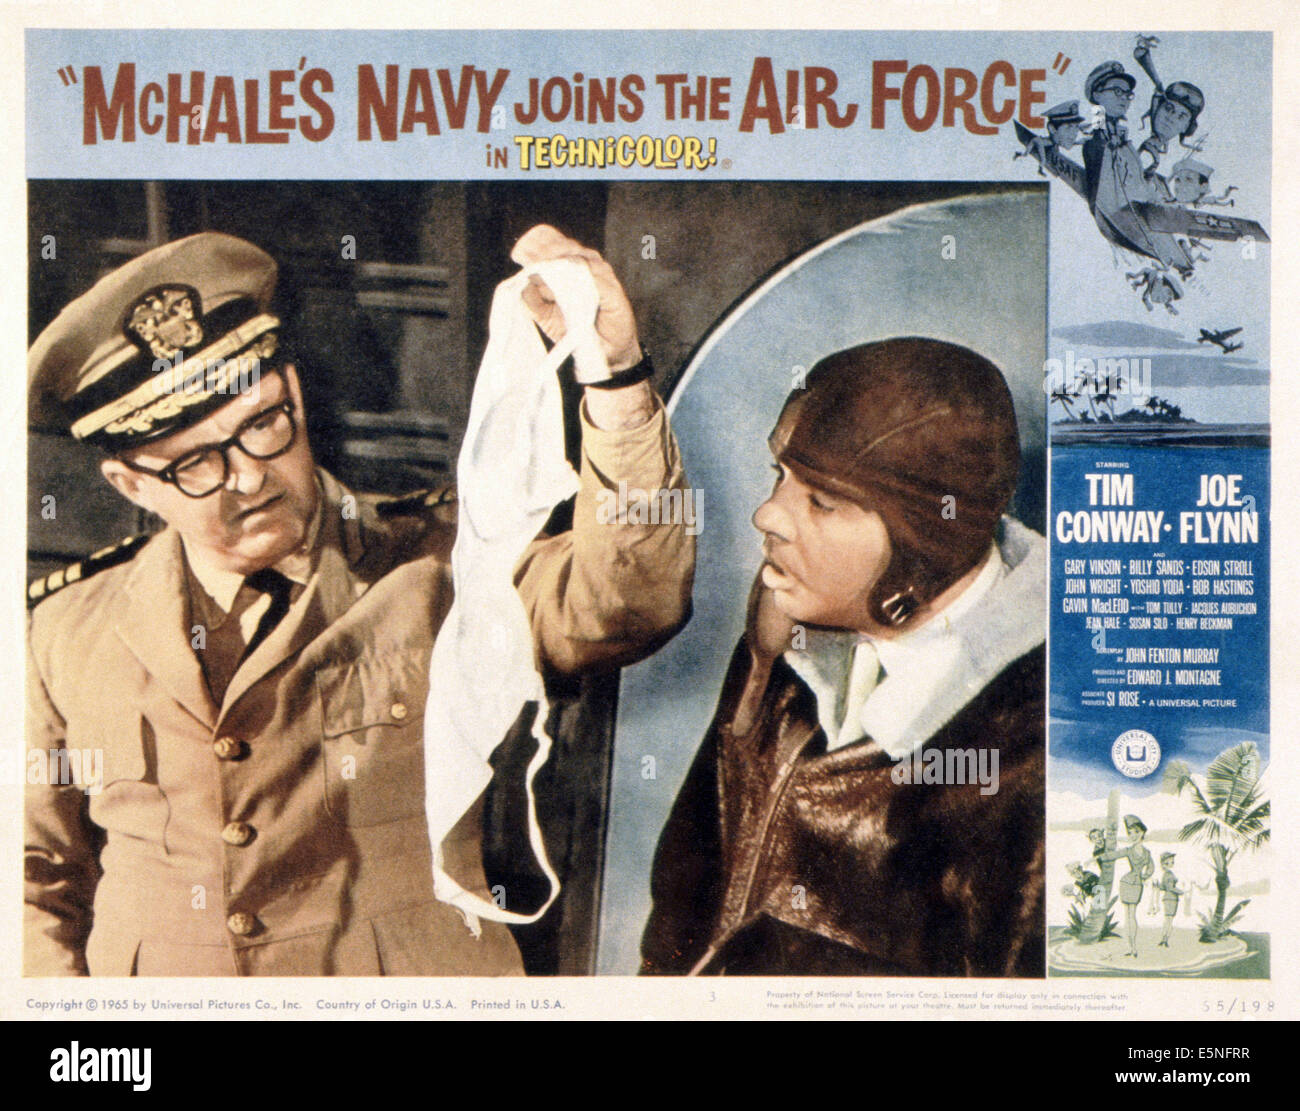 MCHALE'S NAVY JOINS THE AIR FORCE, from left: Joe Flynn, Tim Conway Stock  Photo - Alamy